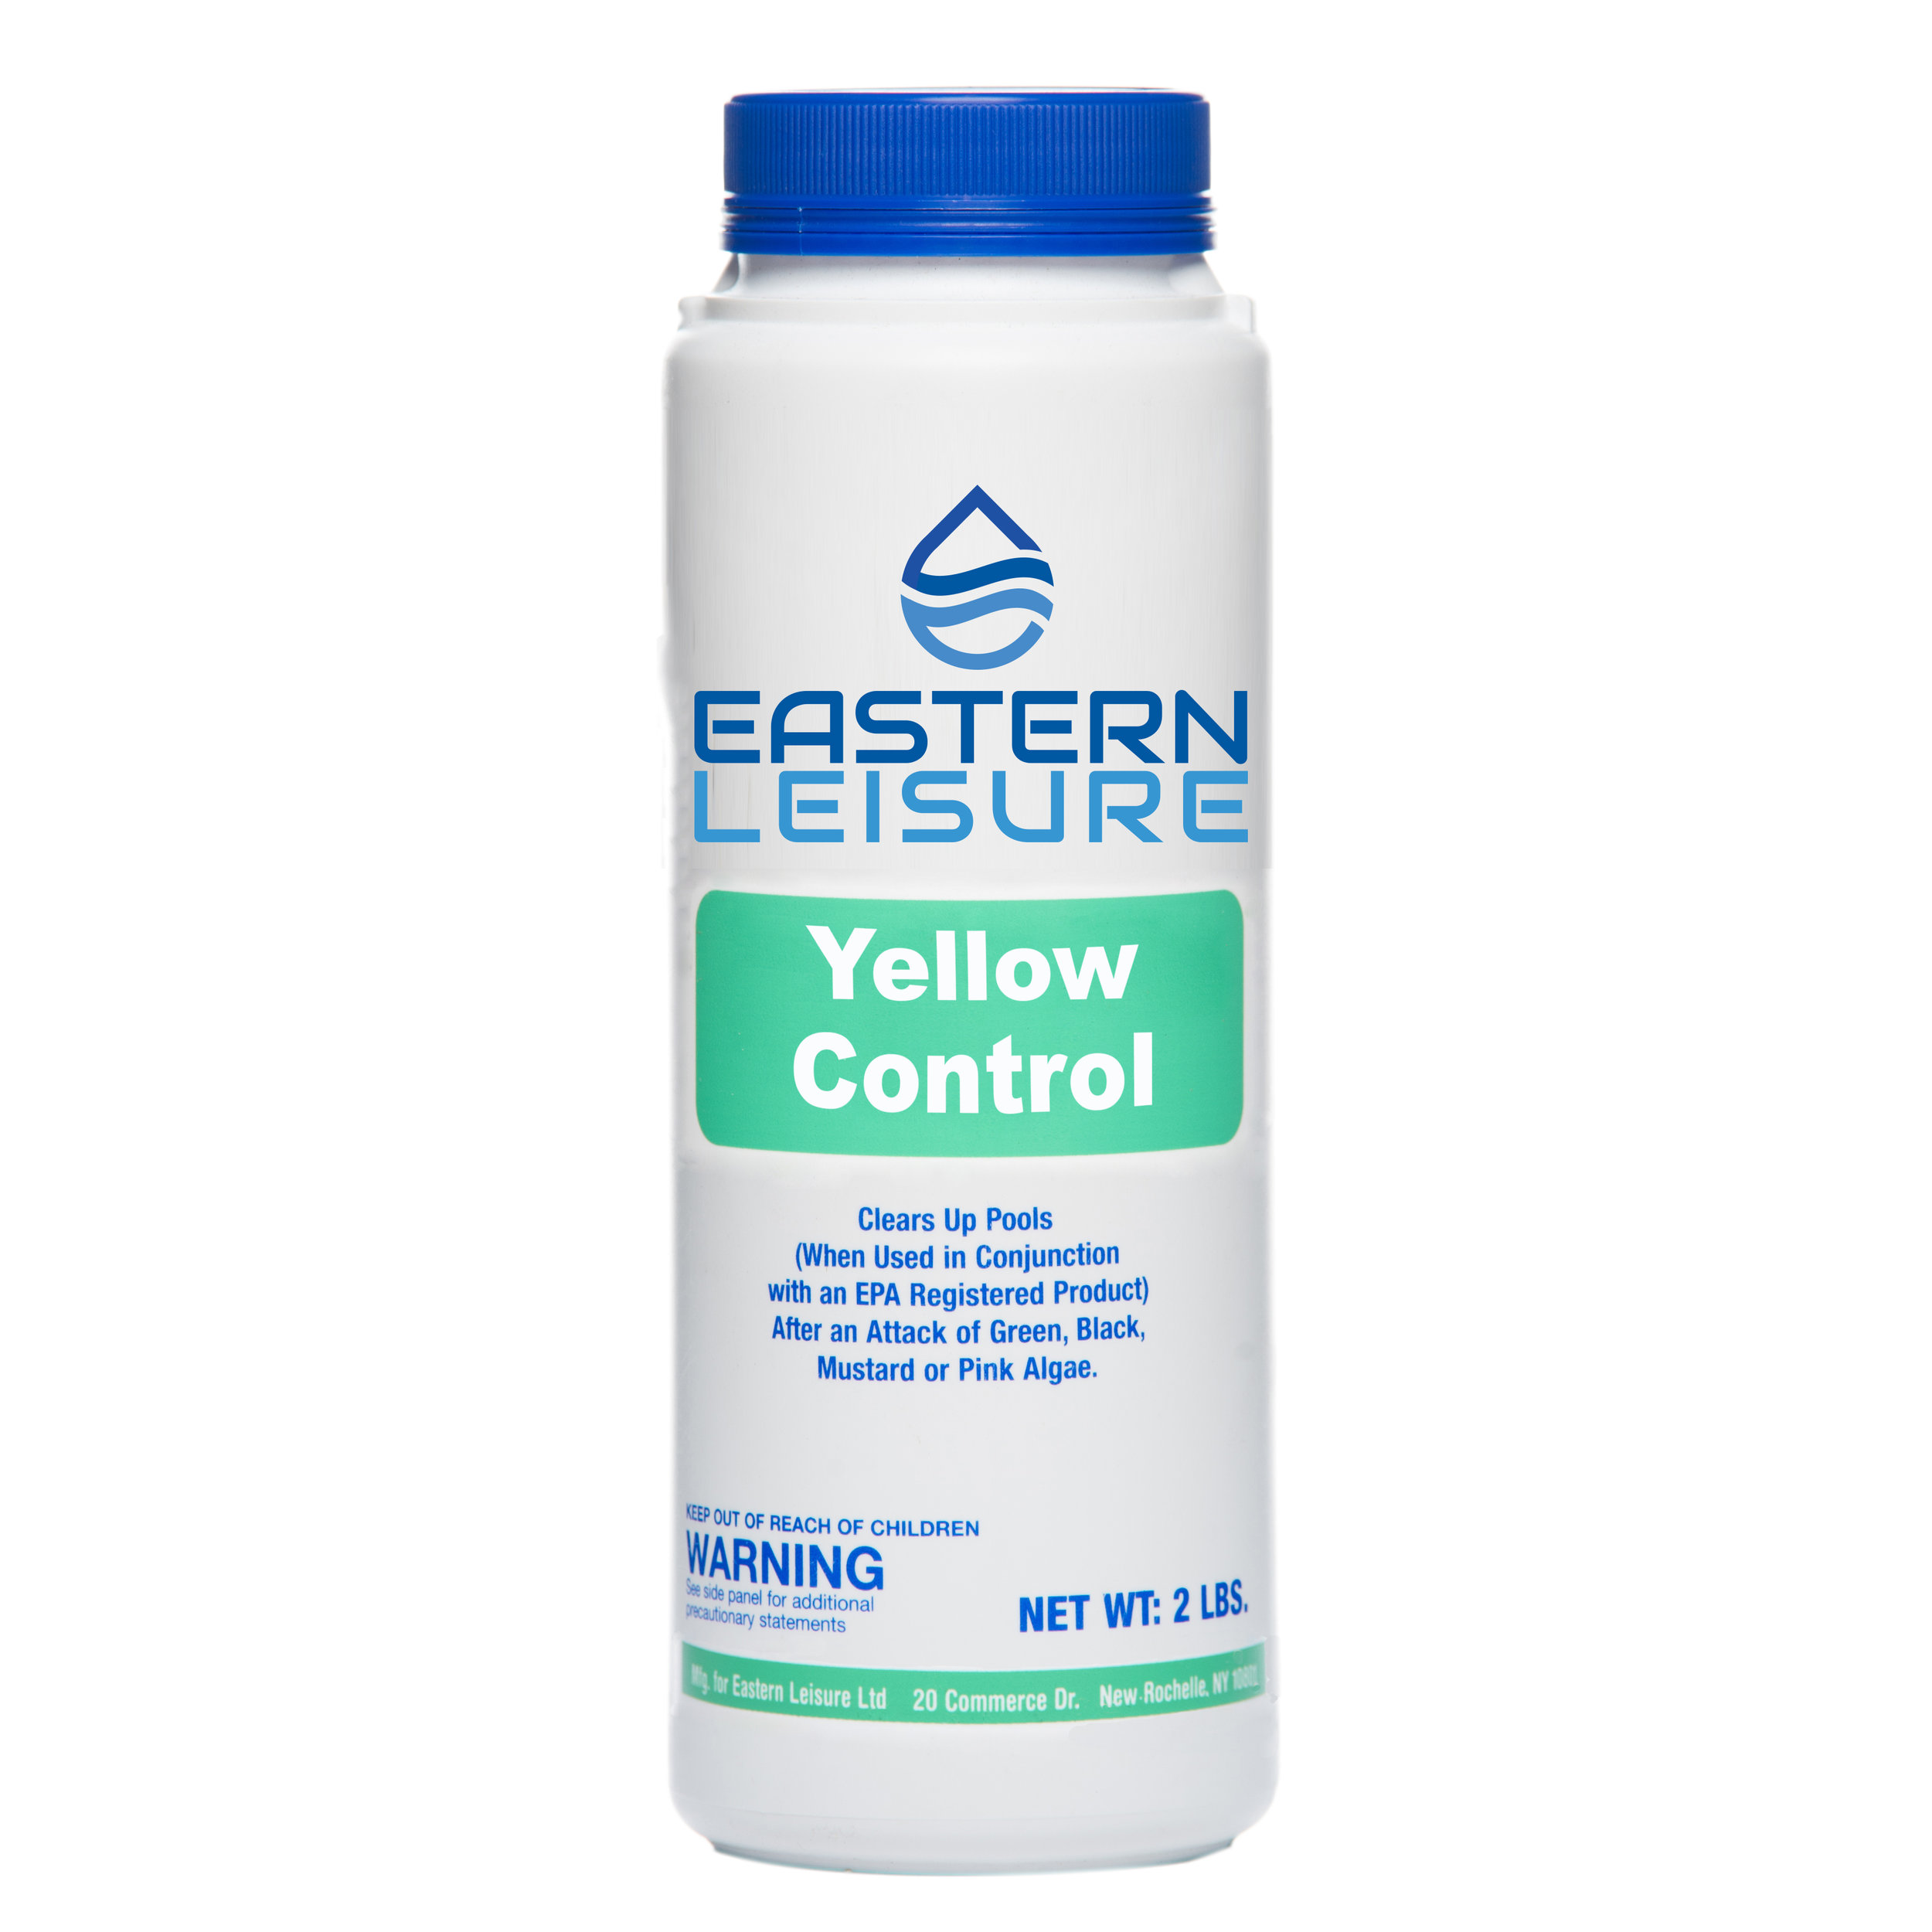 Yellow Control   ELP7A - 2 lb. container, 12/case  A non-metallic algaecide that clears pool water after an attack of green, black, mustard, or pink algae.  Use in combination with an EPA-registered chlorinating product.  Maintenance dosage: 4-8 oz per  10,000 gal.